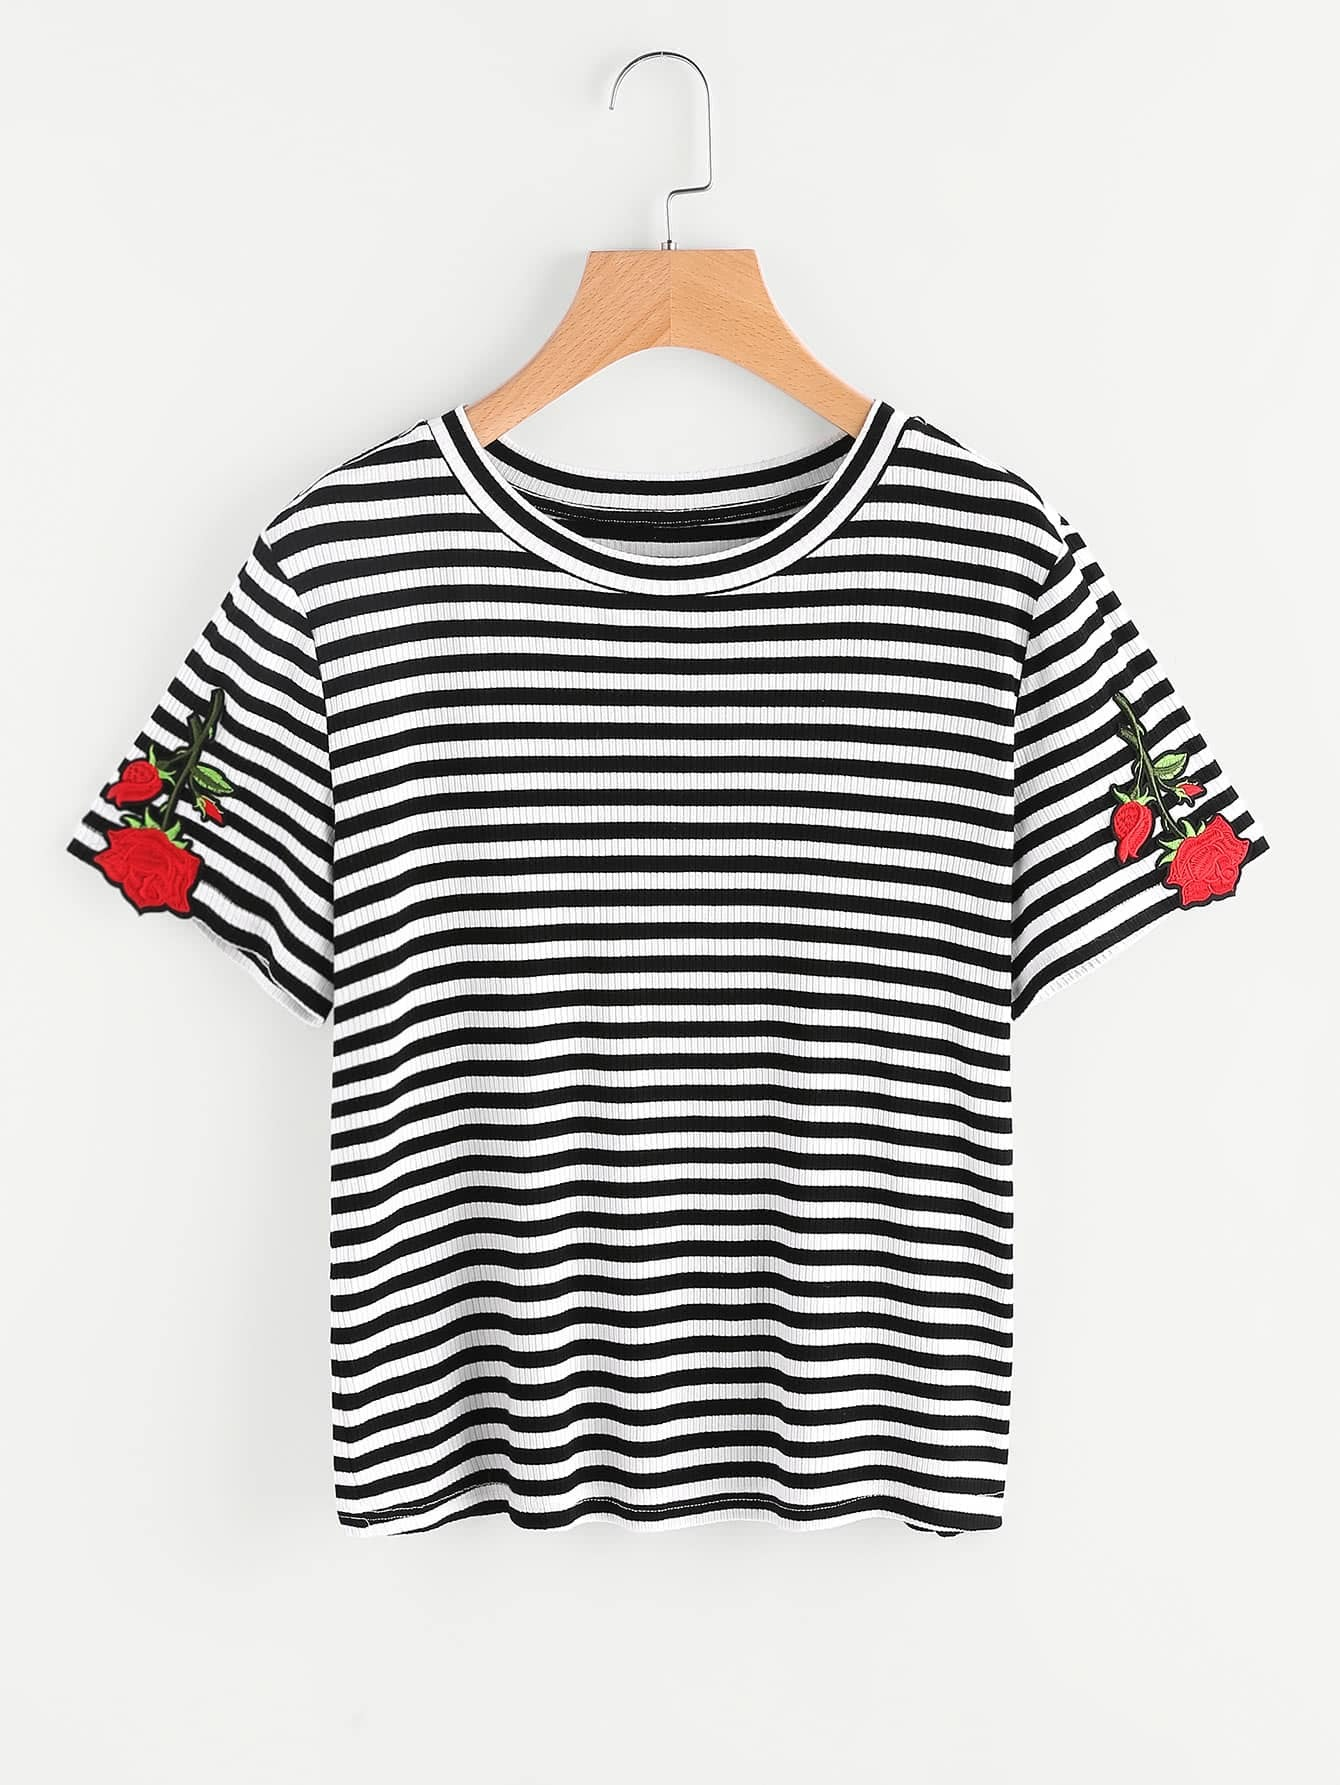 Rose Patch Rib Knit Striped Tee tee170529702